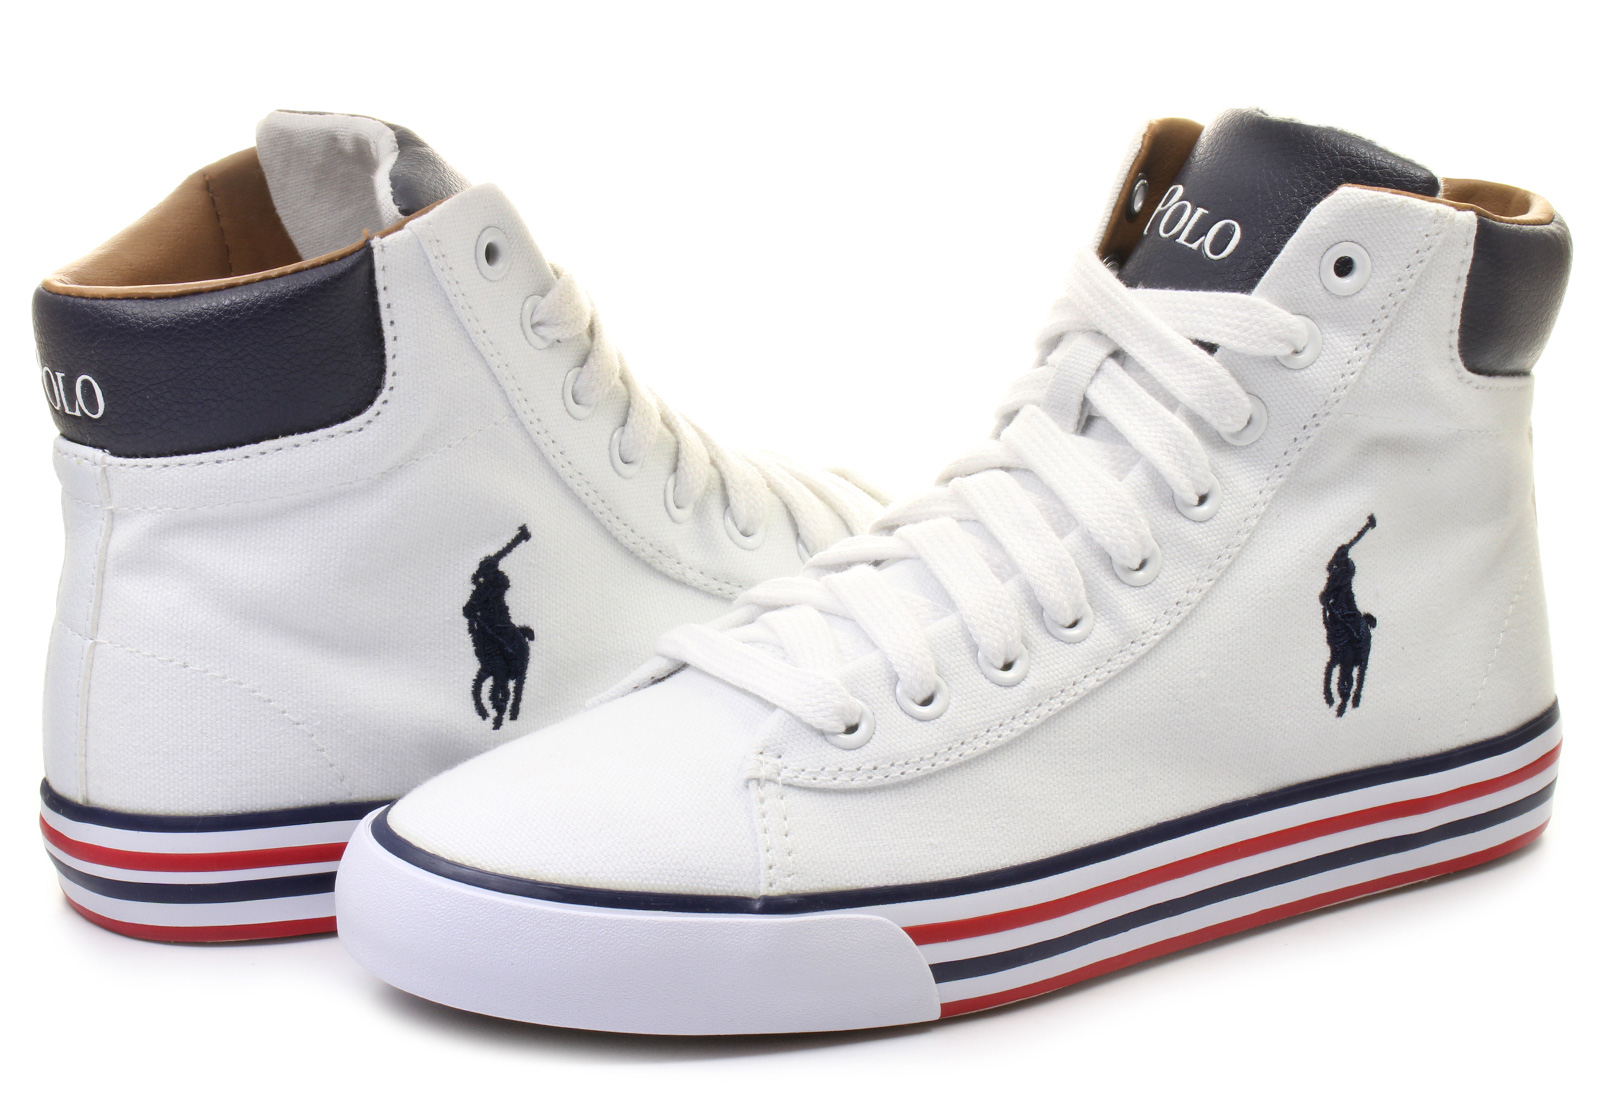 polo ralph lauren sneakers harvey mid 295 c w1433 online shop for sneakers shoes and boots. Black Bedroom Furniture Sets. Home Design Ideas